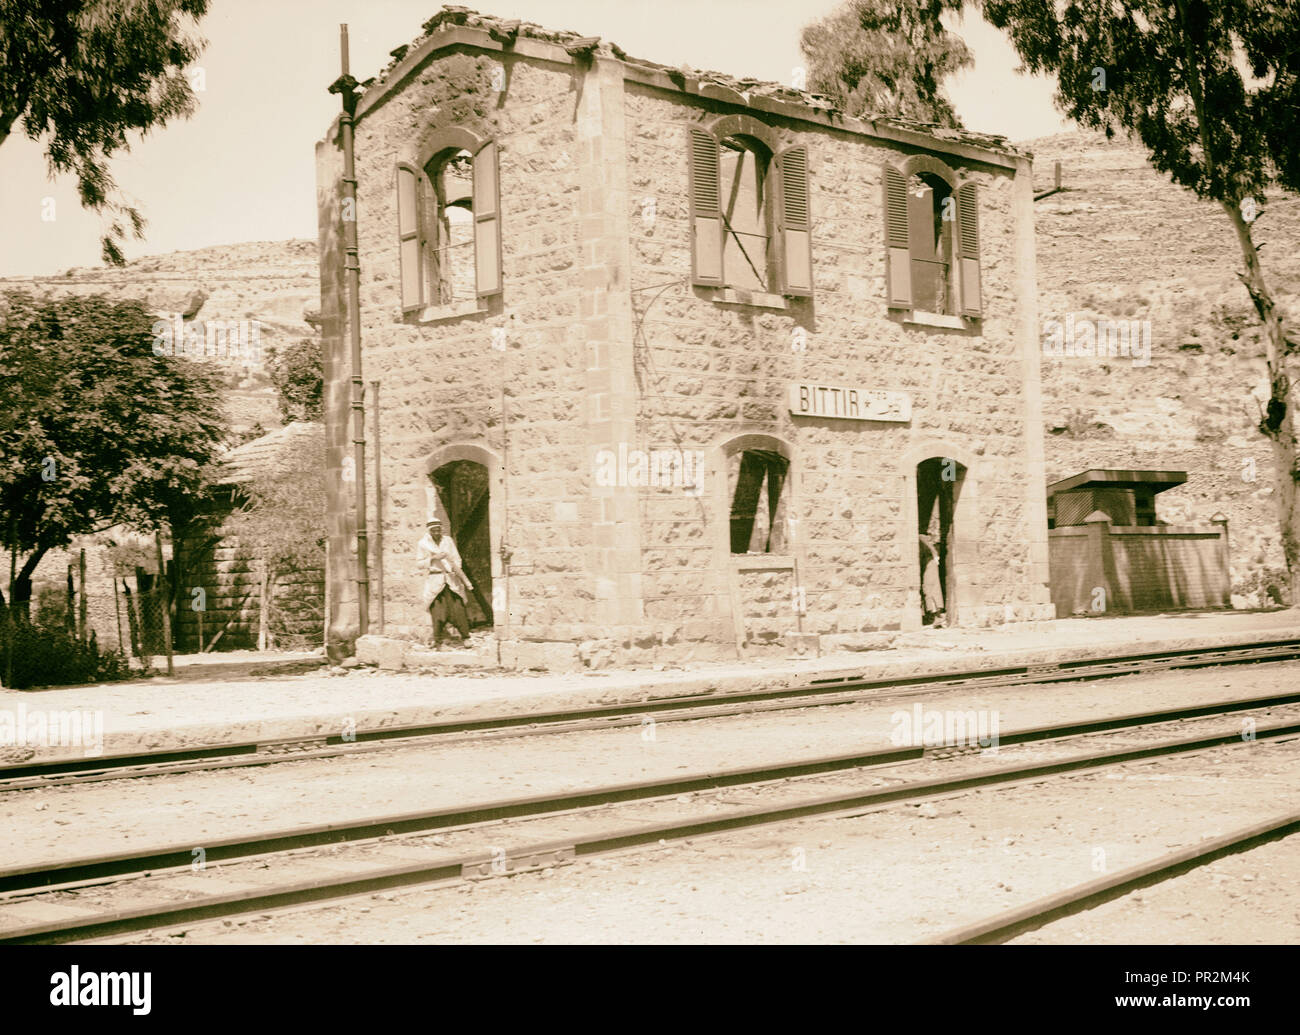 Bittir station gutted with fire. 1934, West Bank, Bethar, Middle East - Stock Image